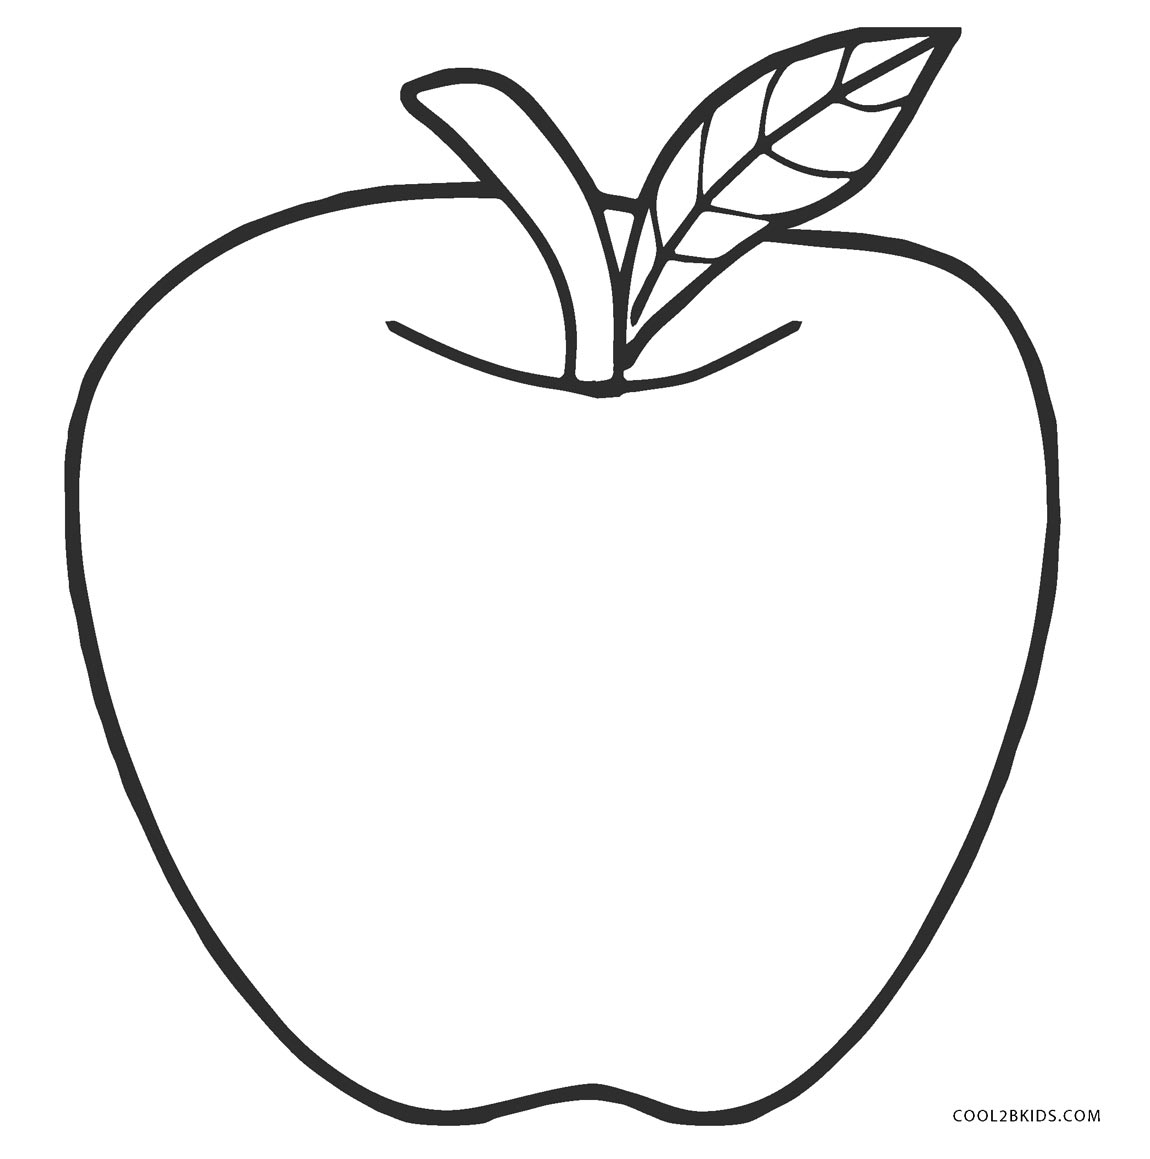 coloring page of an apple free printable apple coloring pages for kids an of apple page coloring